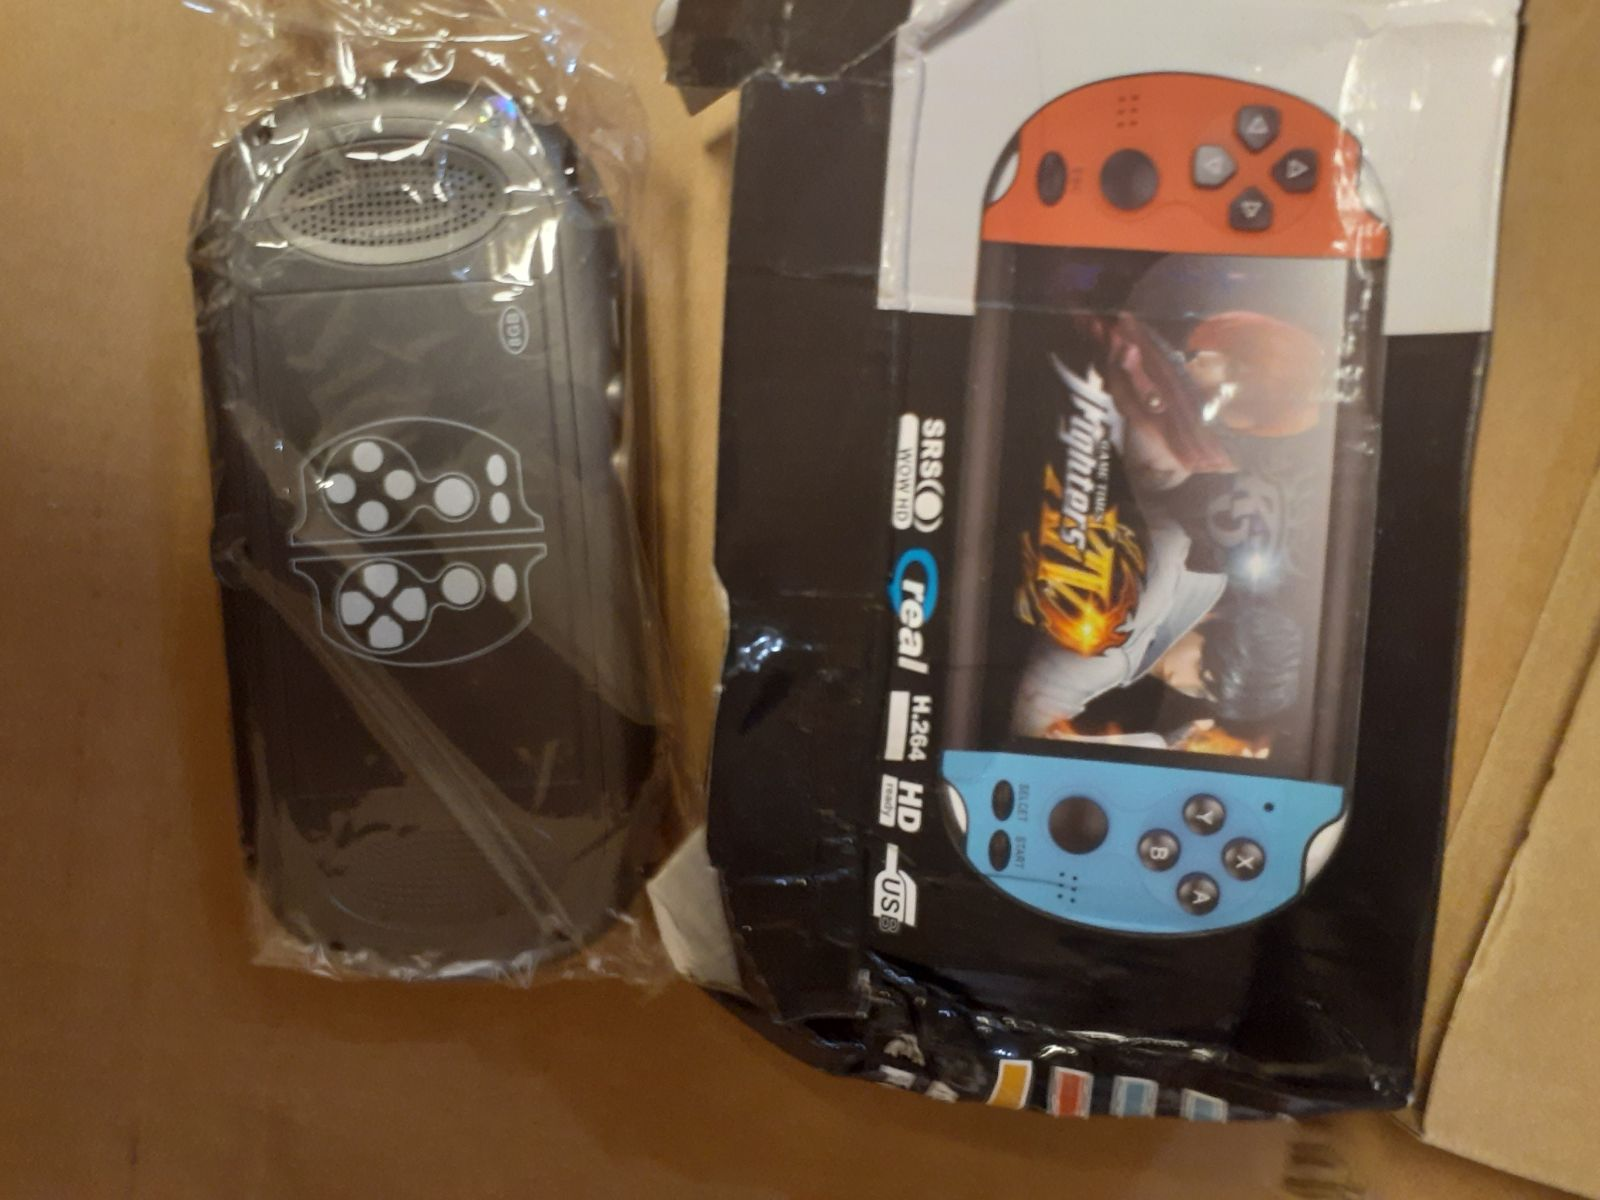 Handheld Game Player 4.3 Inch Large Scre